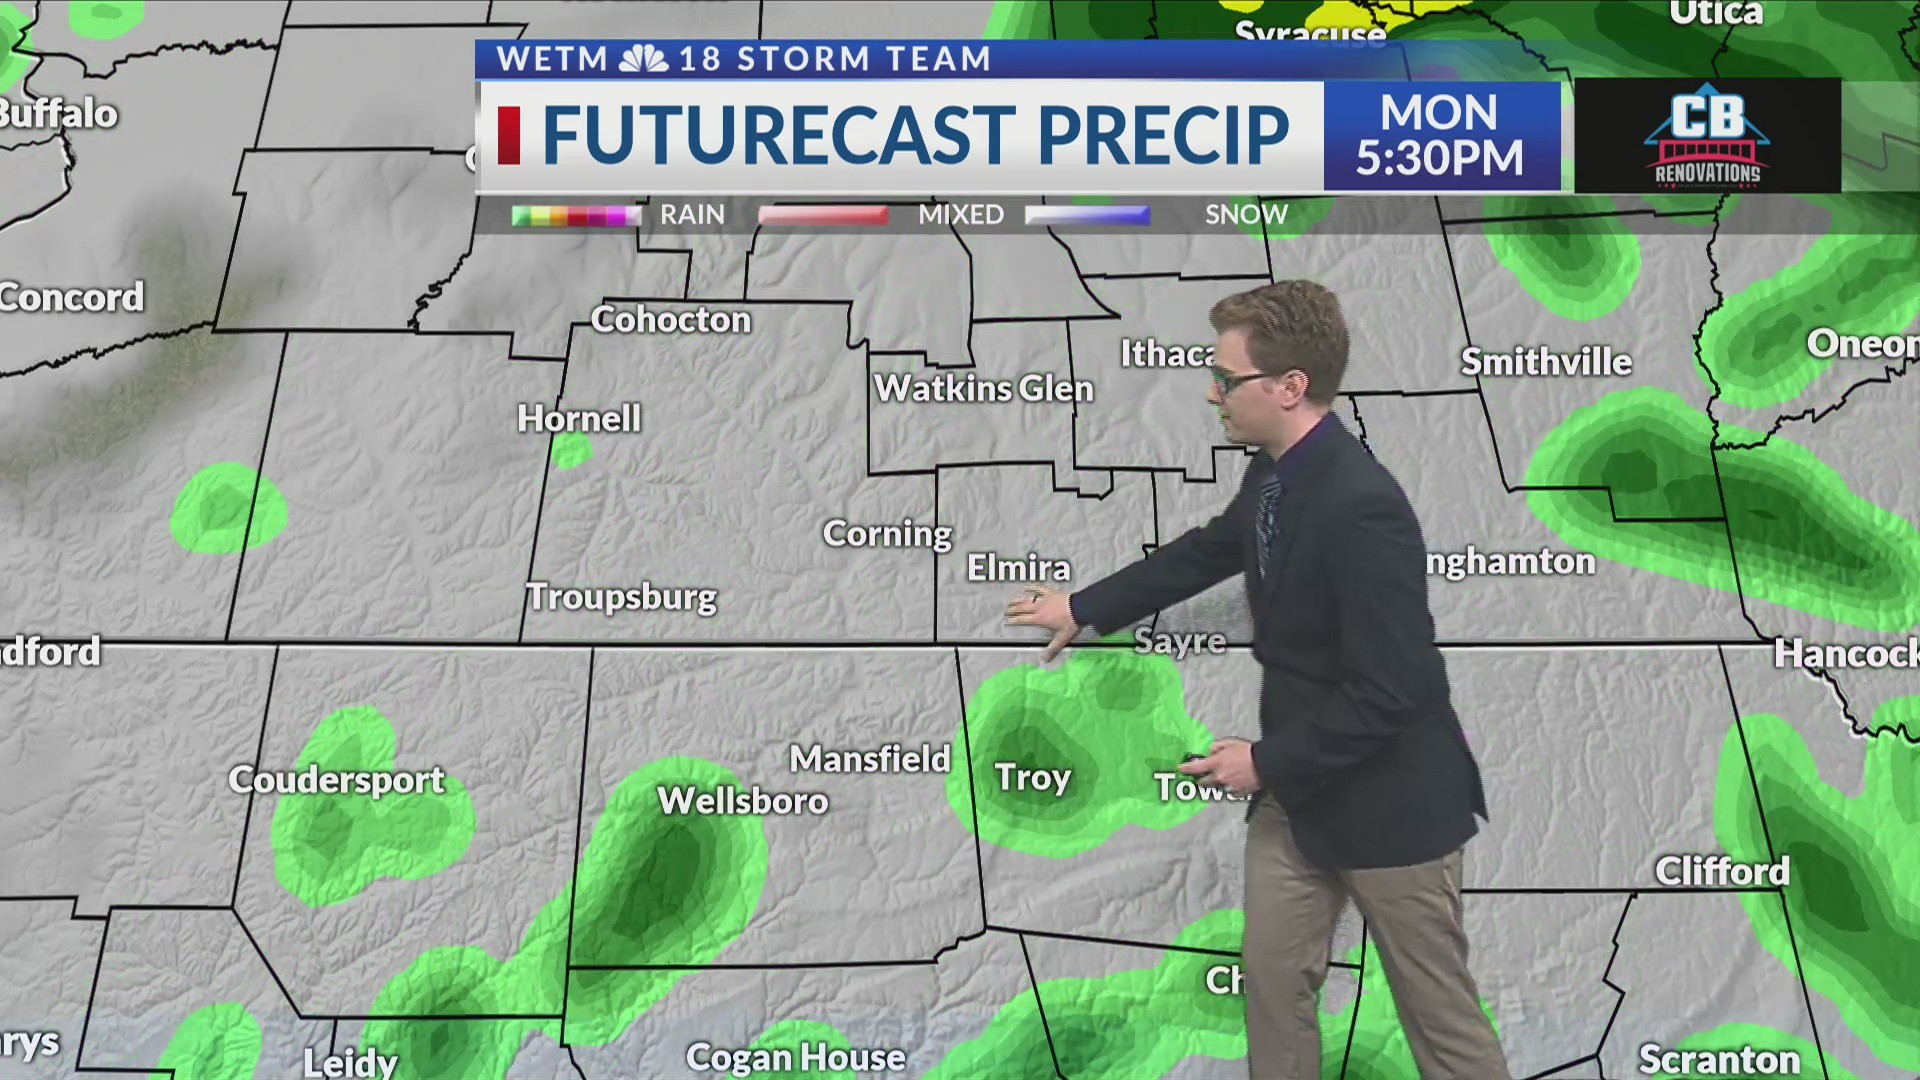 Sunday Morning's Forecast (6/9/19)